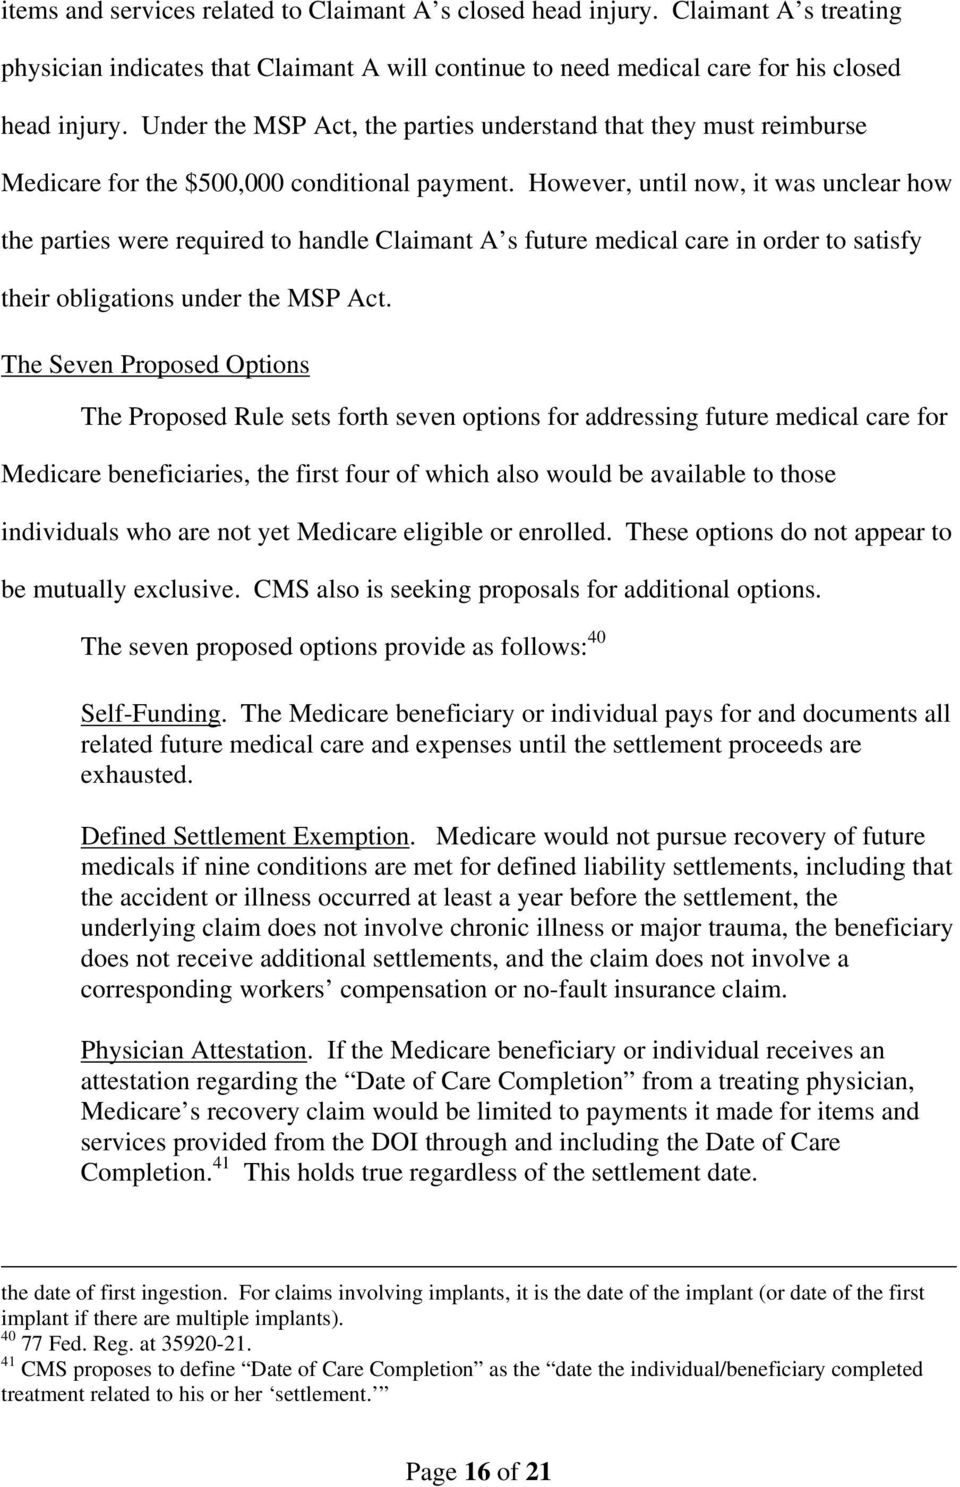 However, until now, it was unclear how the parties were required to handle Claimant A s future medical care in order to satisfy their obligations under the MSP Act.